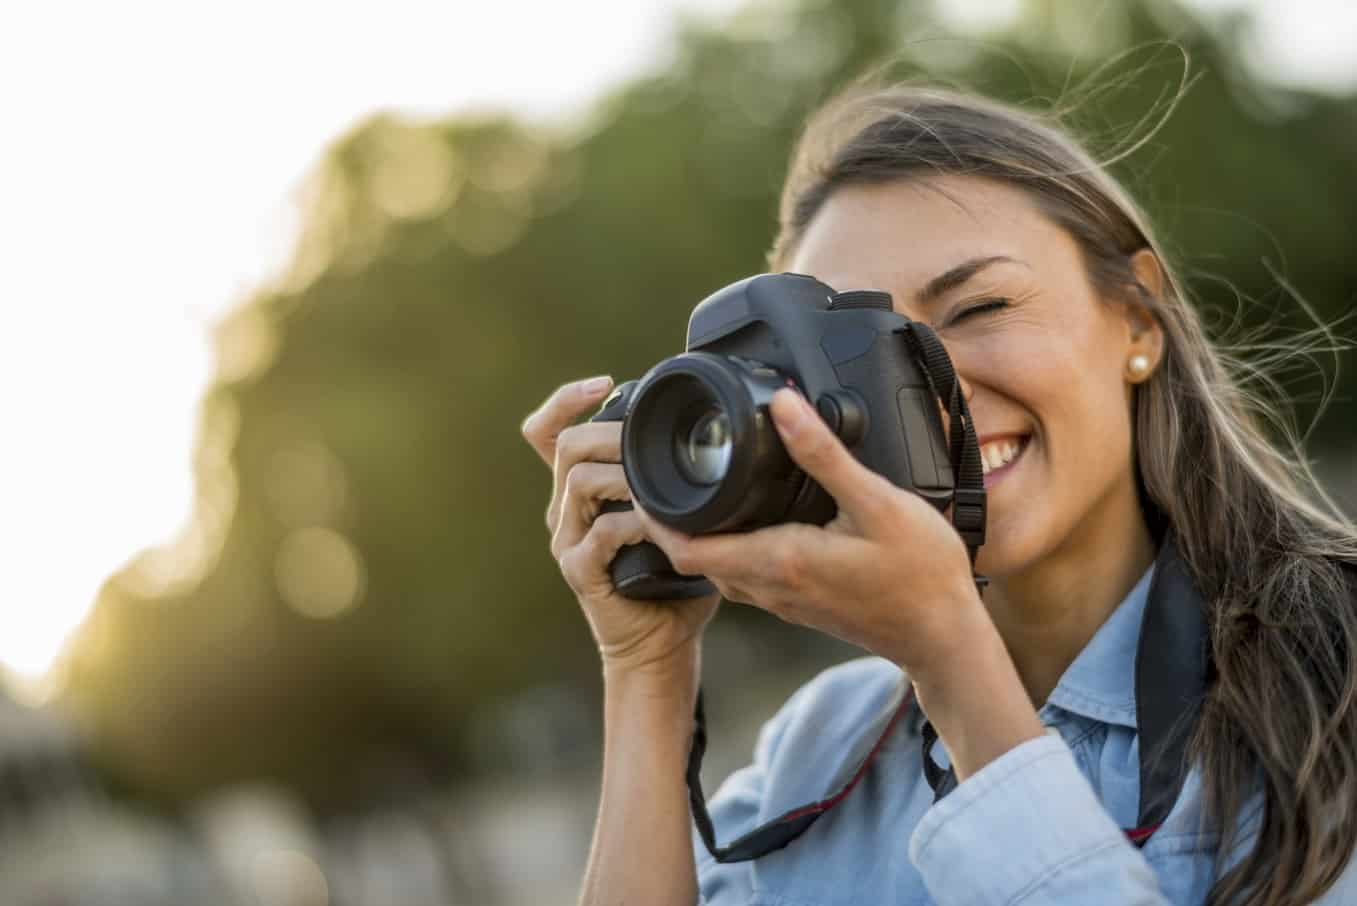 Female photographer taking pictures outdoors and holding a camera